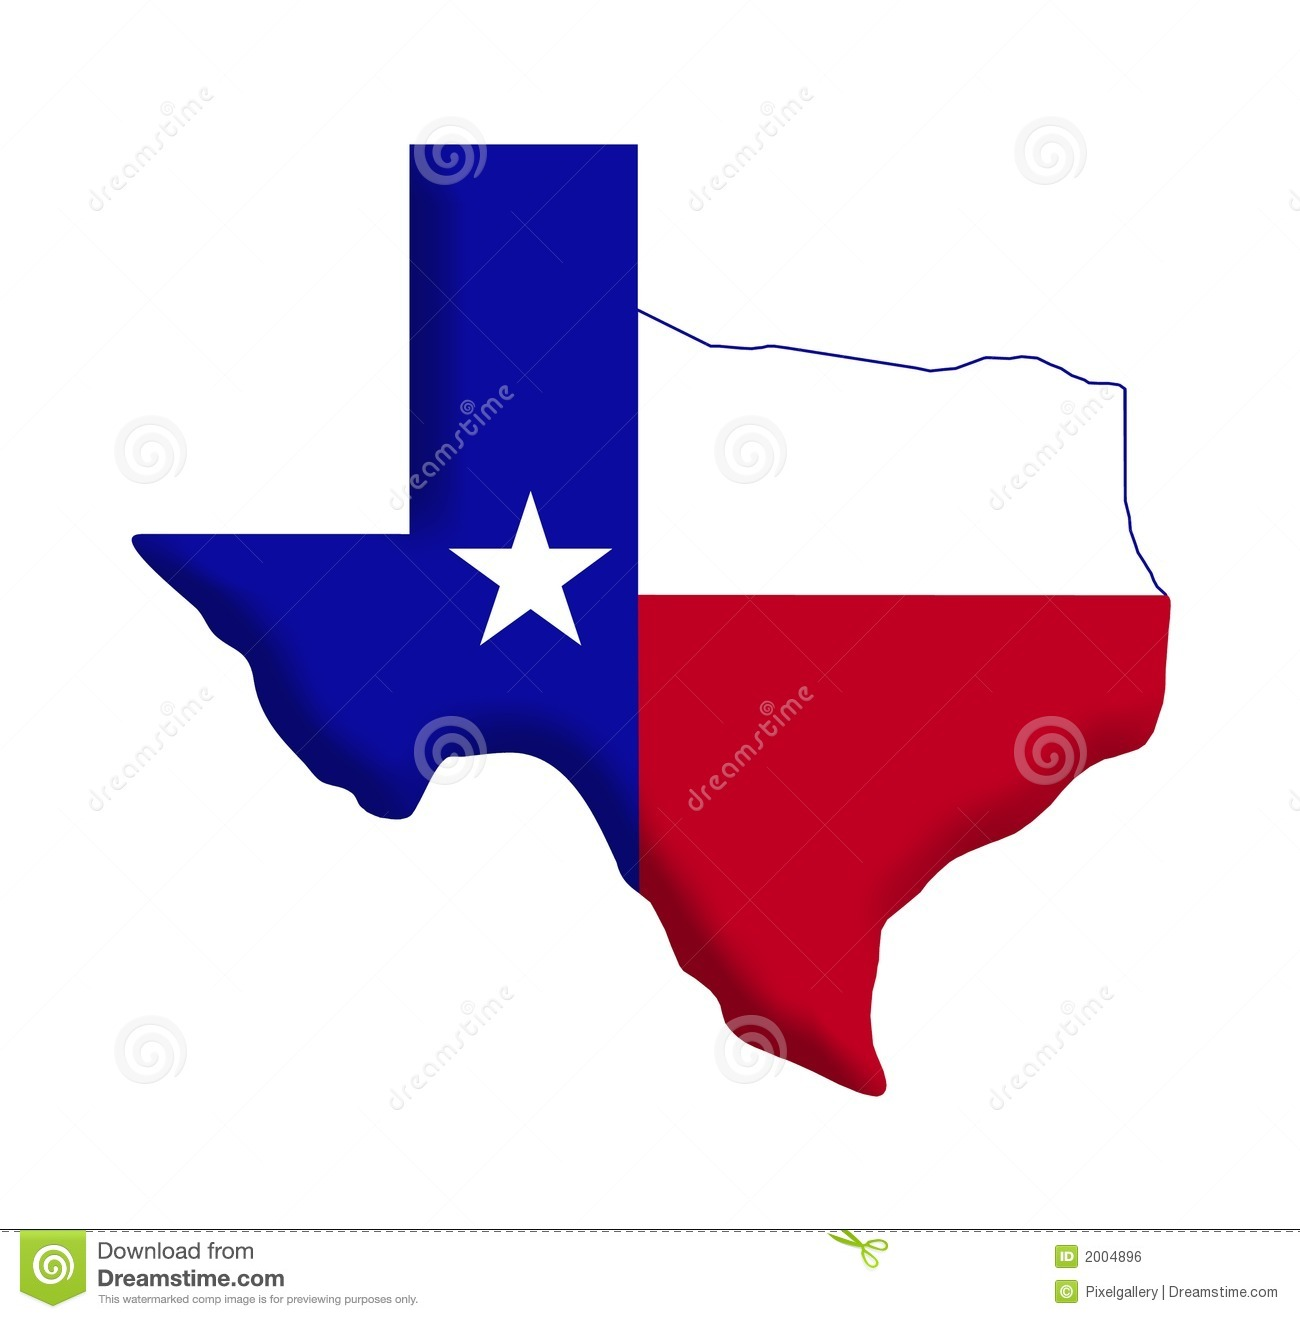 Of Texas Star And Colors Of Texas Flag I-Of Texas Star And Colors Of Texas Flag Incorporated Inside Map Texas-9